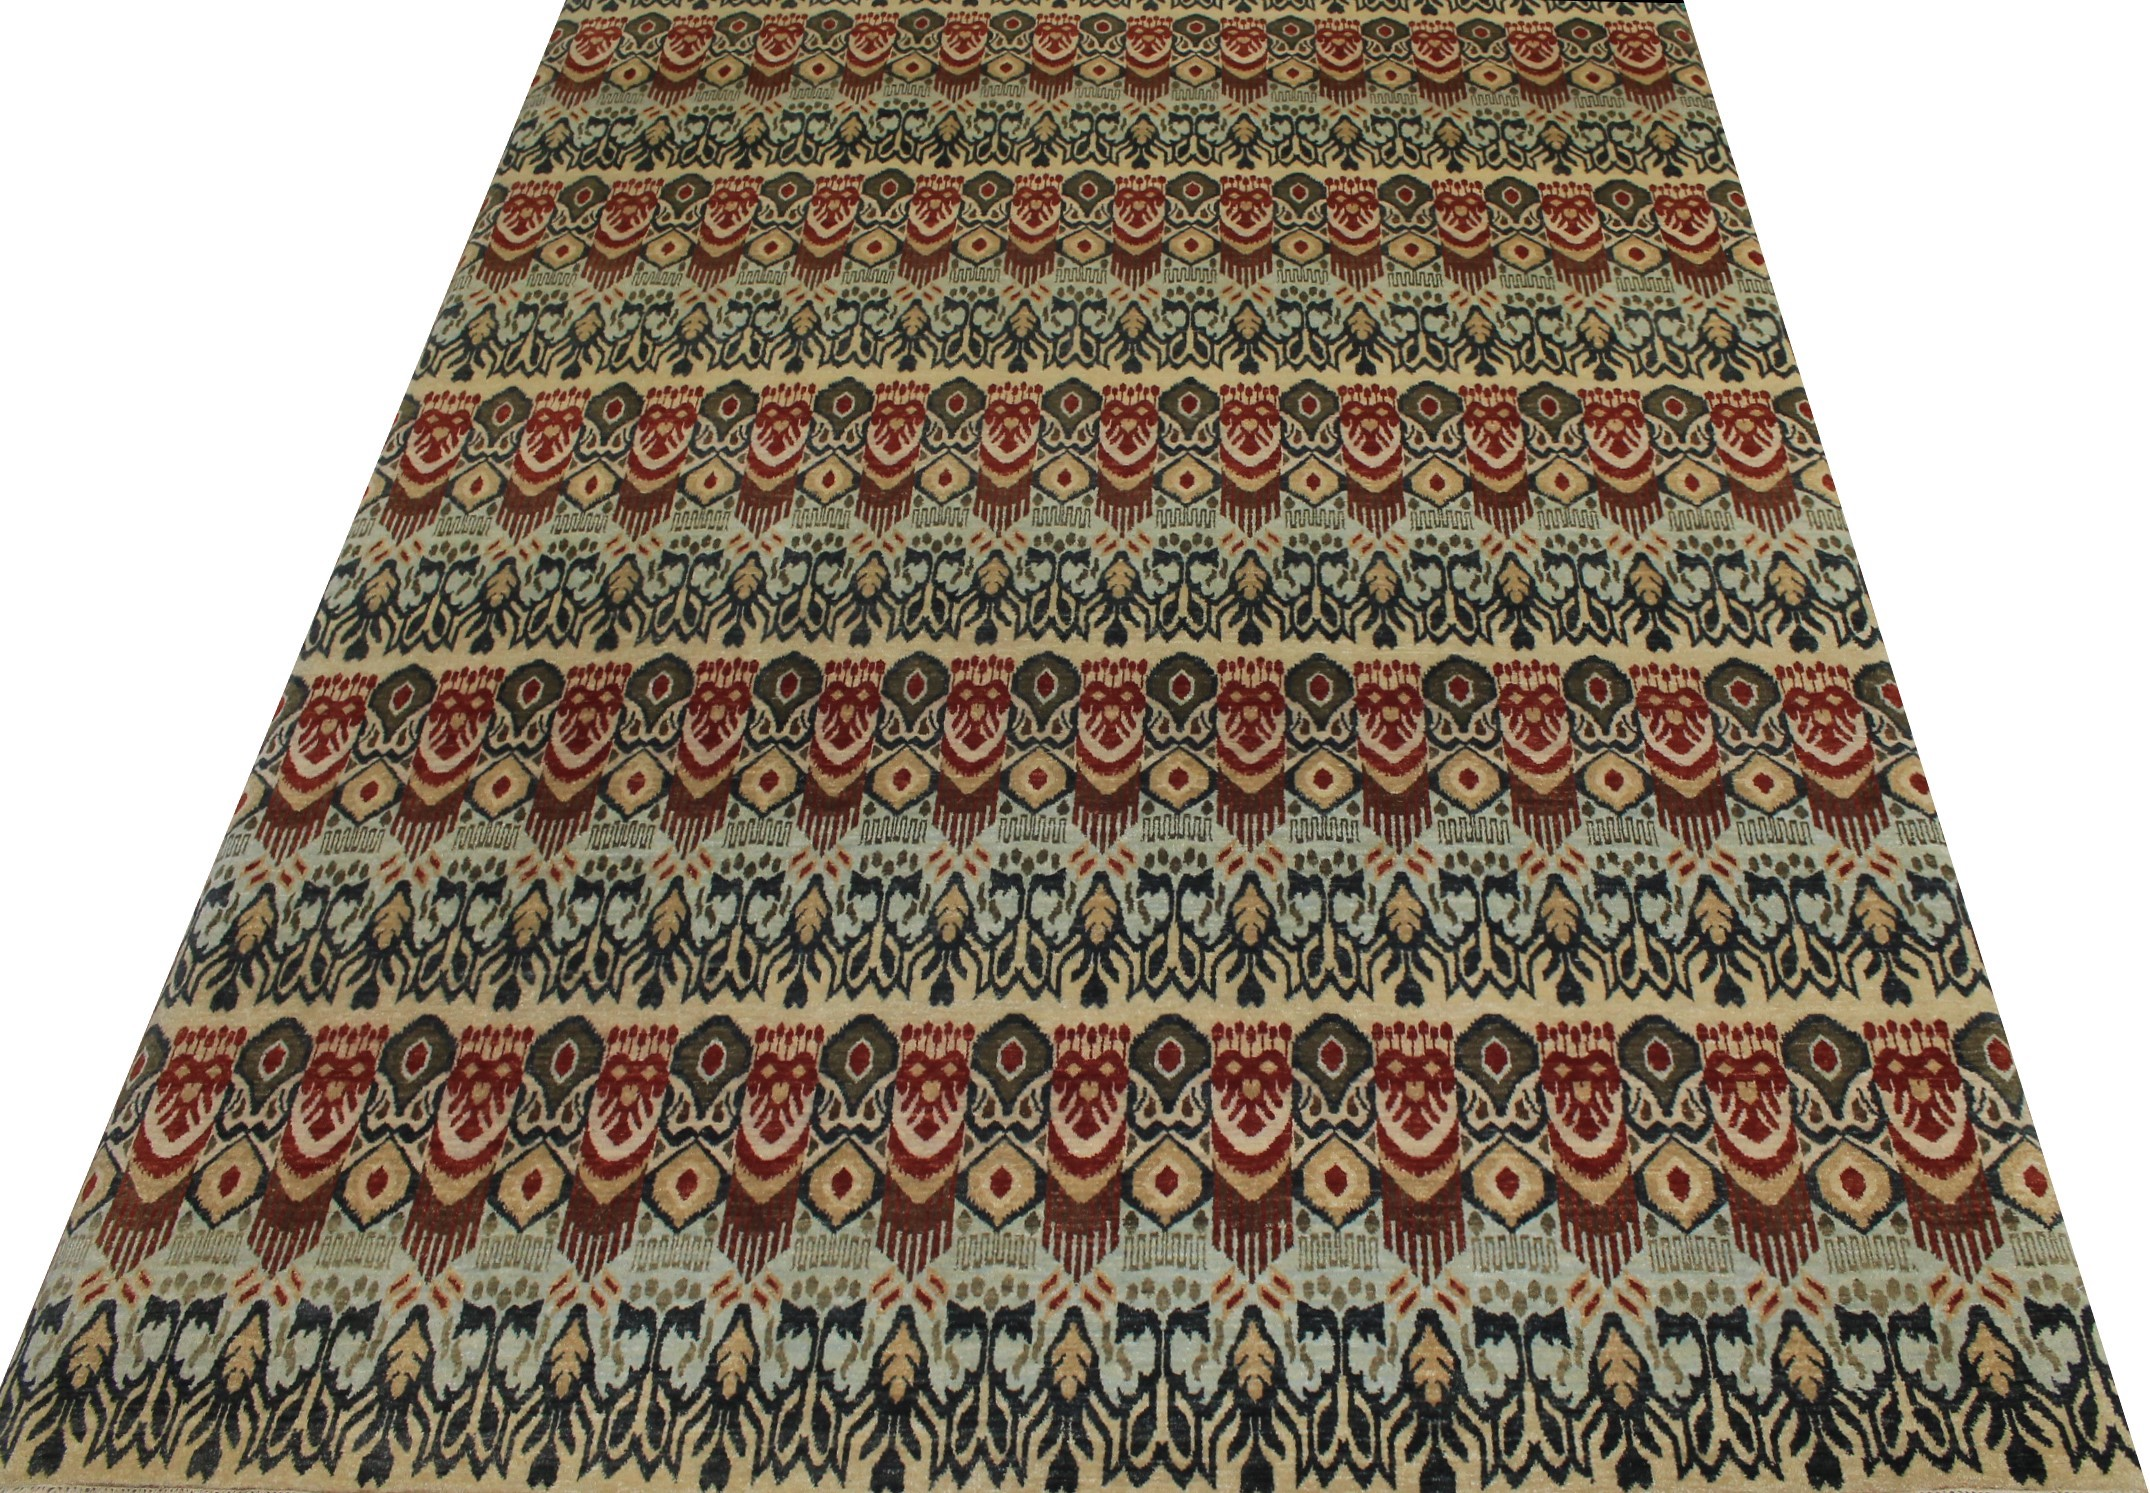 9x12 Contemporary Hand Knotted Wool Area Rug - MR14318